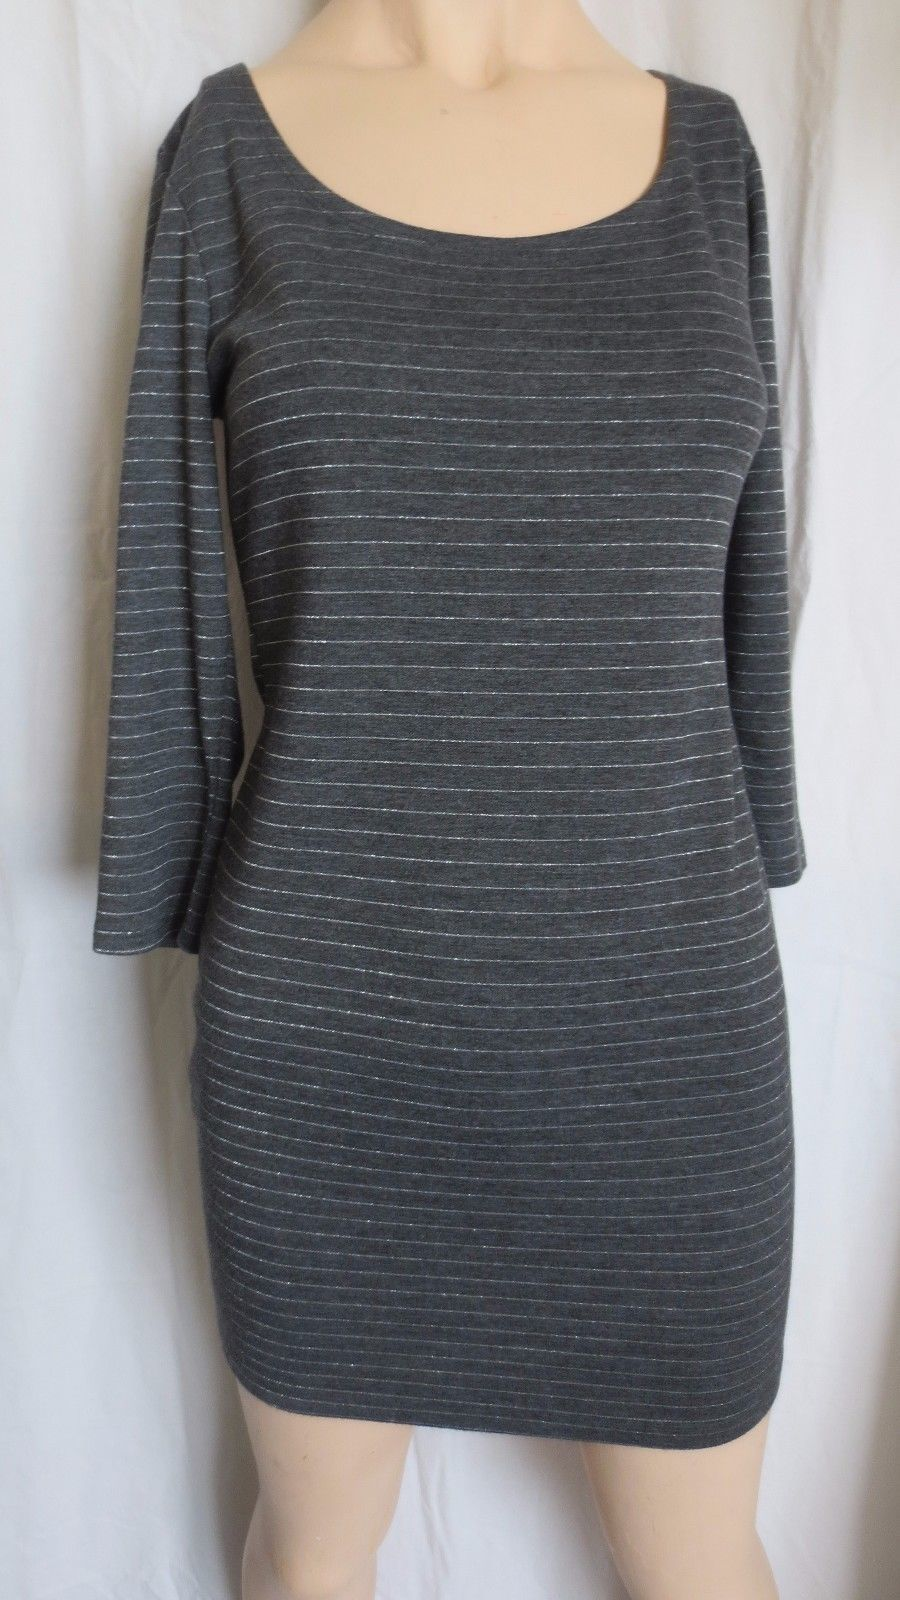 Forever 21 XXI stretch bodycon gray silver mini dress 3/4 sleeves size M - $15.00